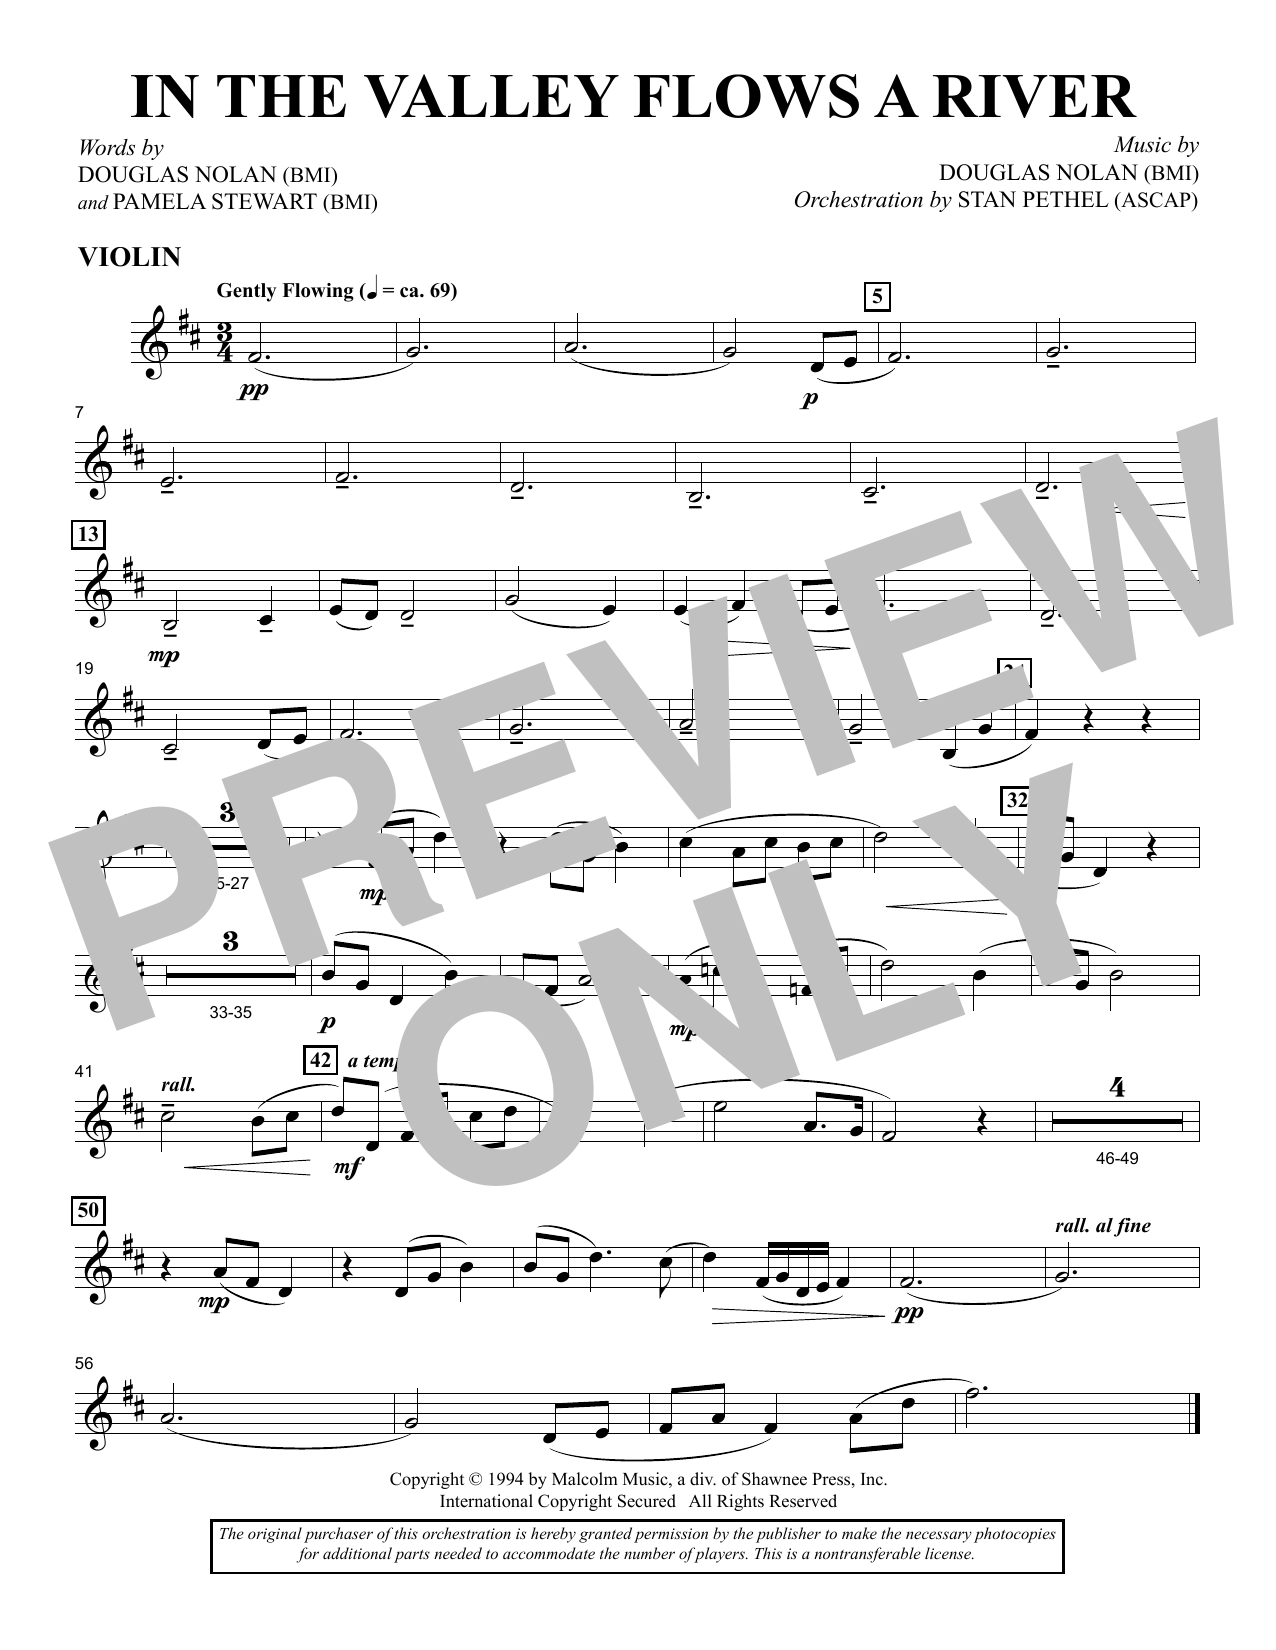 In the Valley Flows a River - Violin sheet music